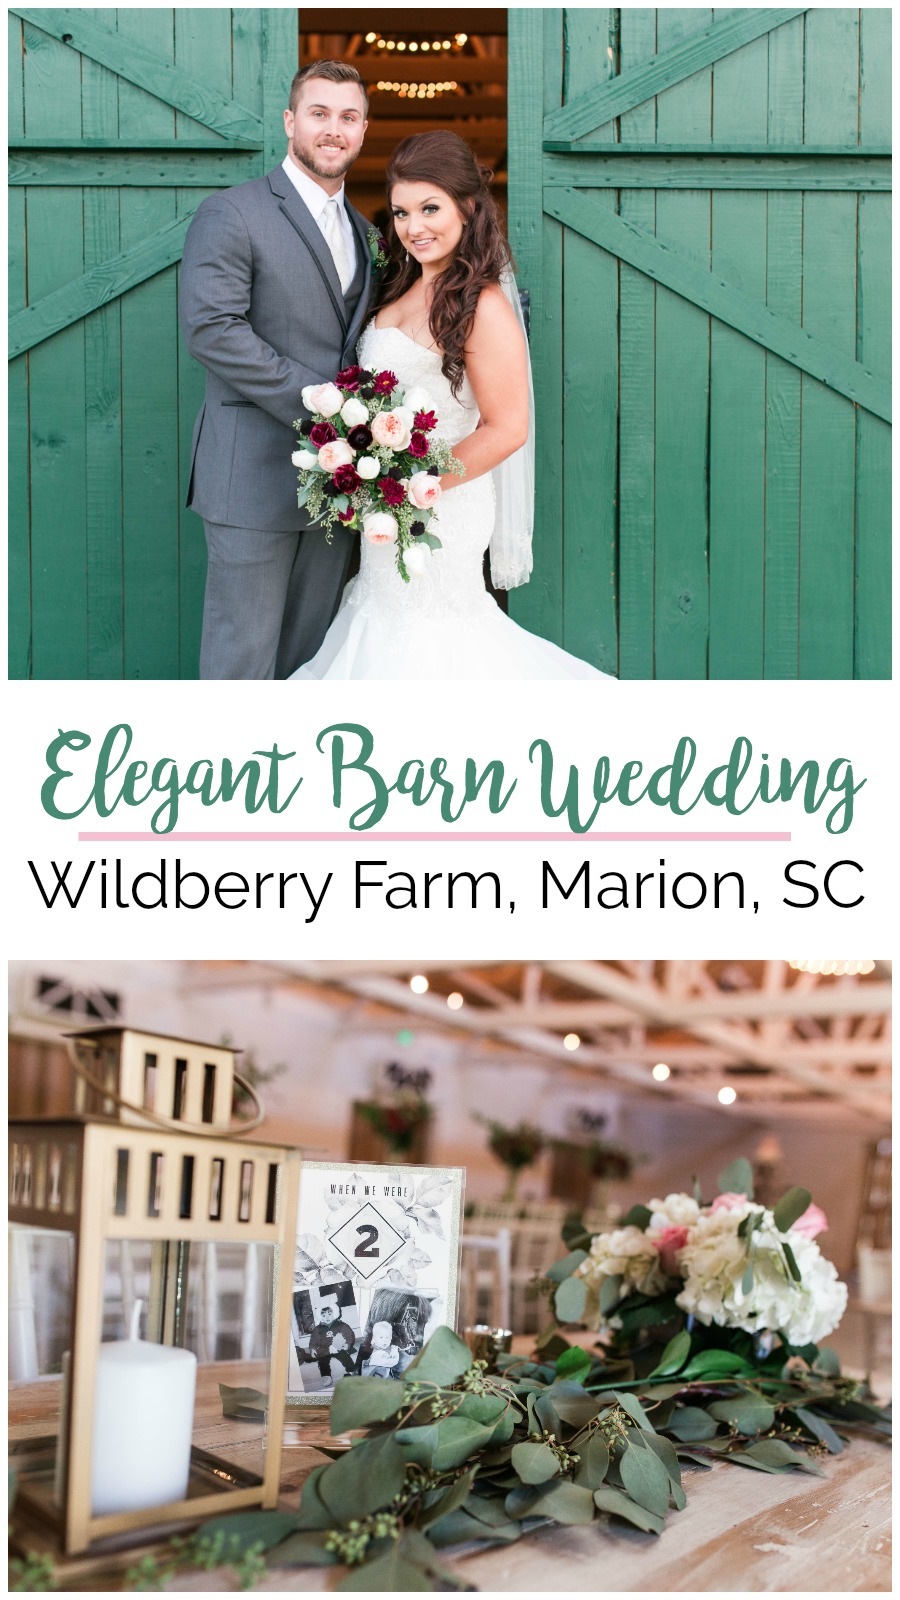 Megan and Caleb: Burgundy and Rose Barn Wedding at Wildberry Farm, Marion, South Carolina | Palmetto State Weddings | Sweet E Photography | Southern barn weddings | barn wedding inspiration